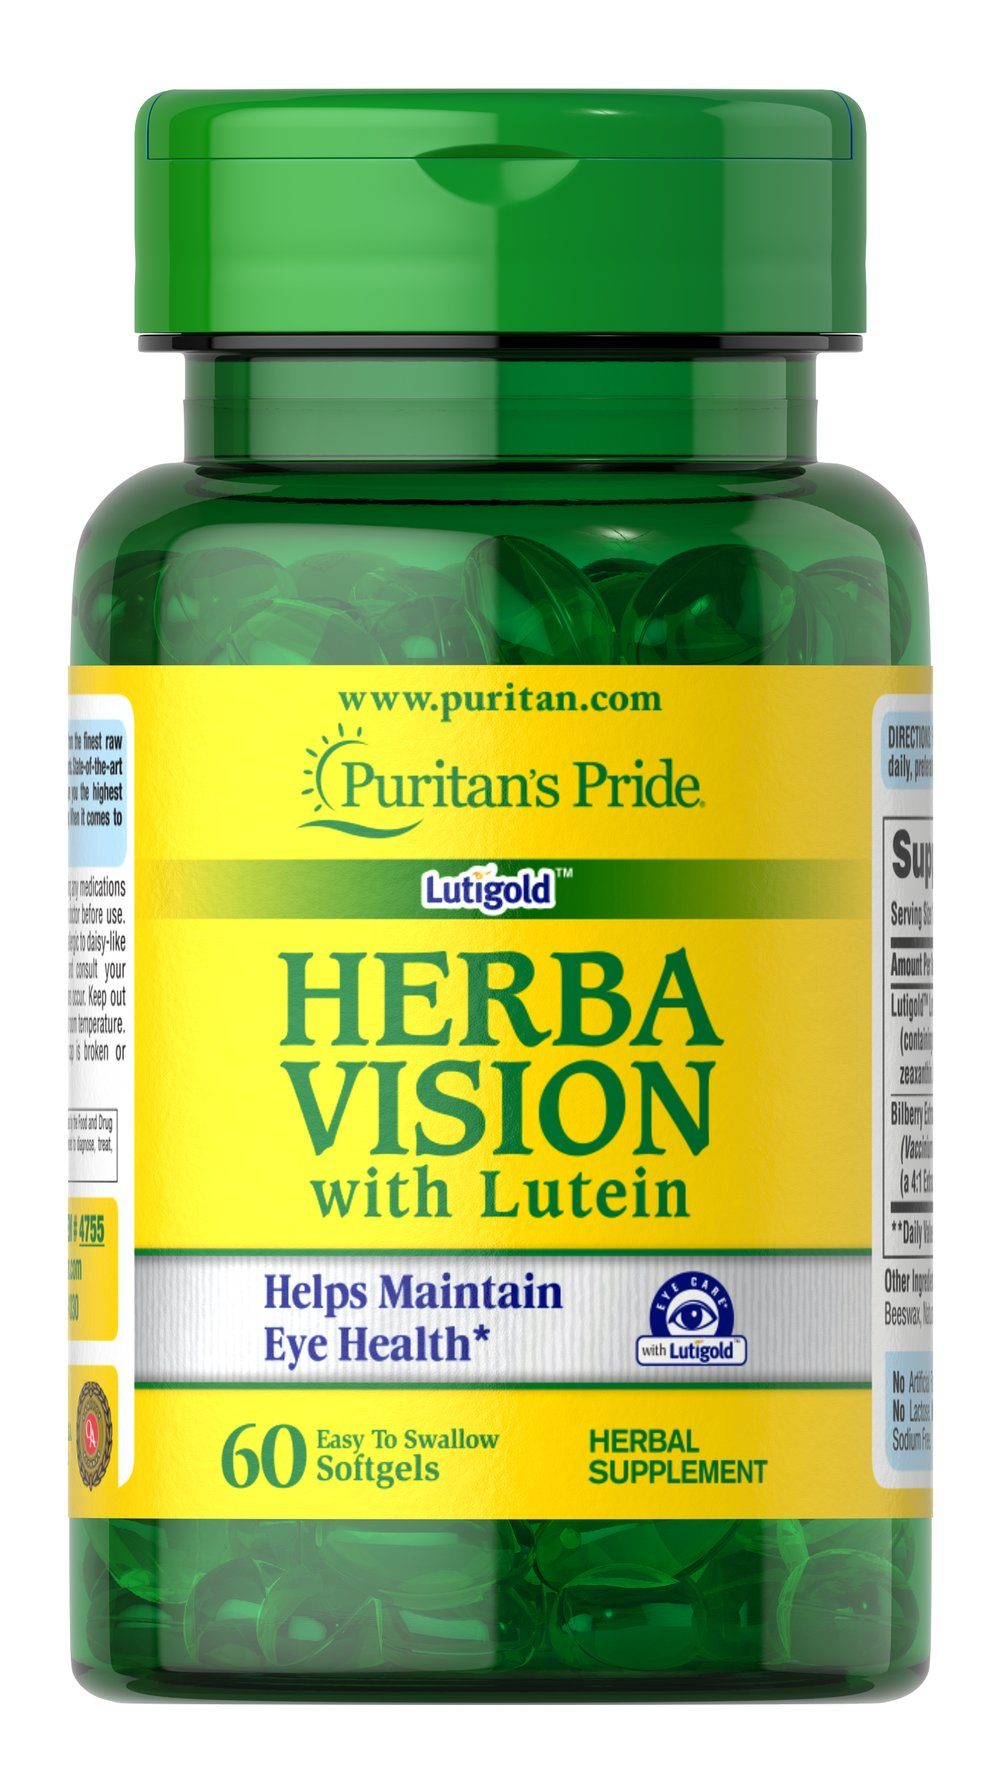 Herbavision with Lutein and Bilberry <p><strong>Nutritional support for your eyes**</strong></p><p>Contributes to clear, healthy vision**</p><p>Formulated with Lutigold™ Lutein, derived from pure, natural sources</p><p>Contains naturally occurring protective antioxidants and active carotenoids, such as Zeaxanthin, for synergistic support**</p><p>Comes in convenient, easy-to-swallow softgels</p> 60 Softgels  $10.36